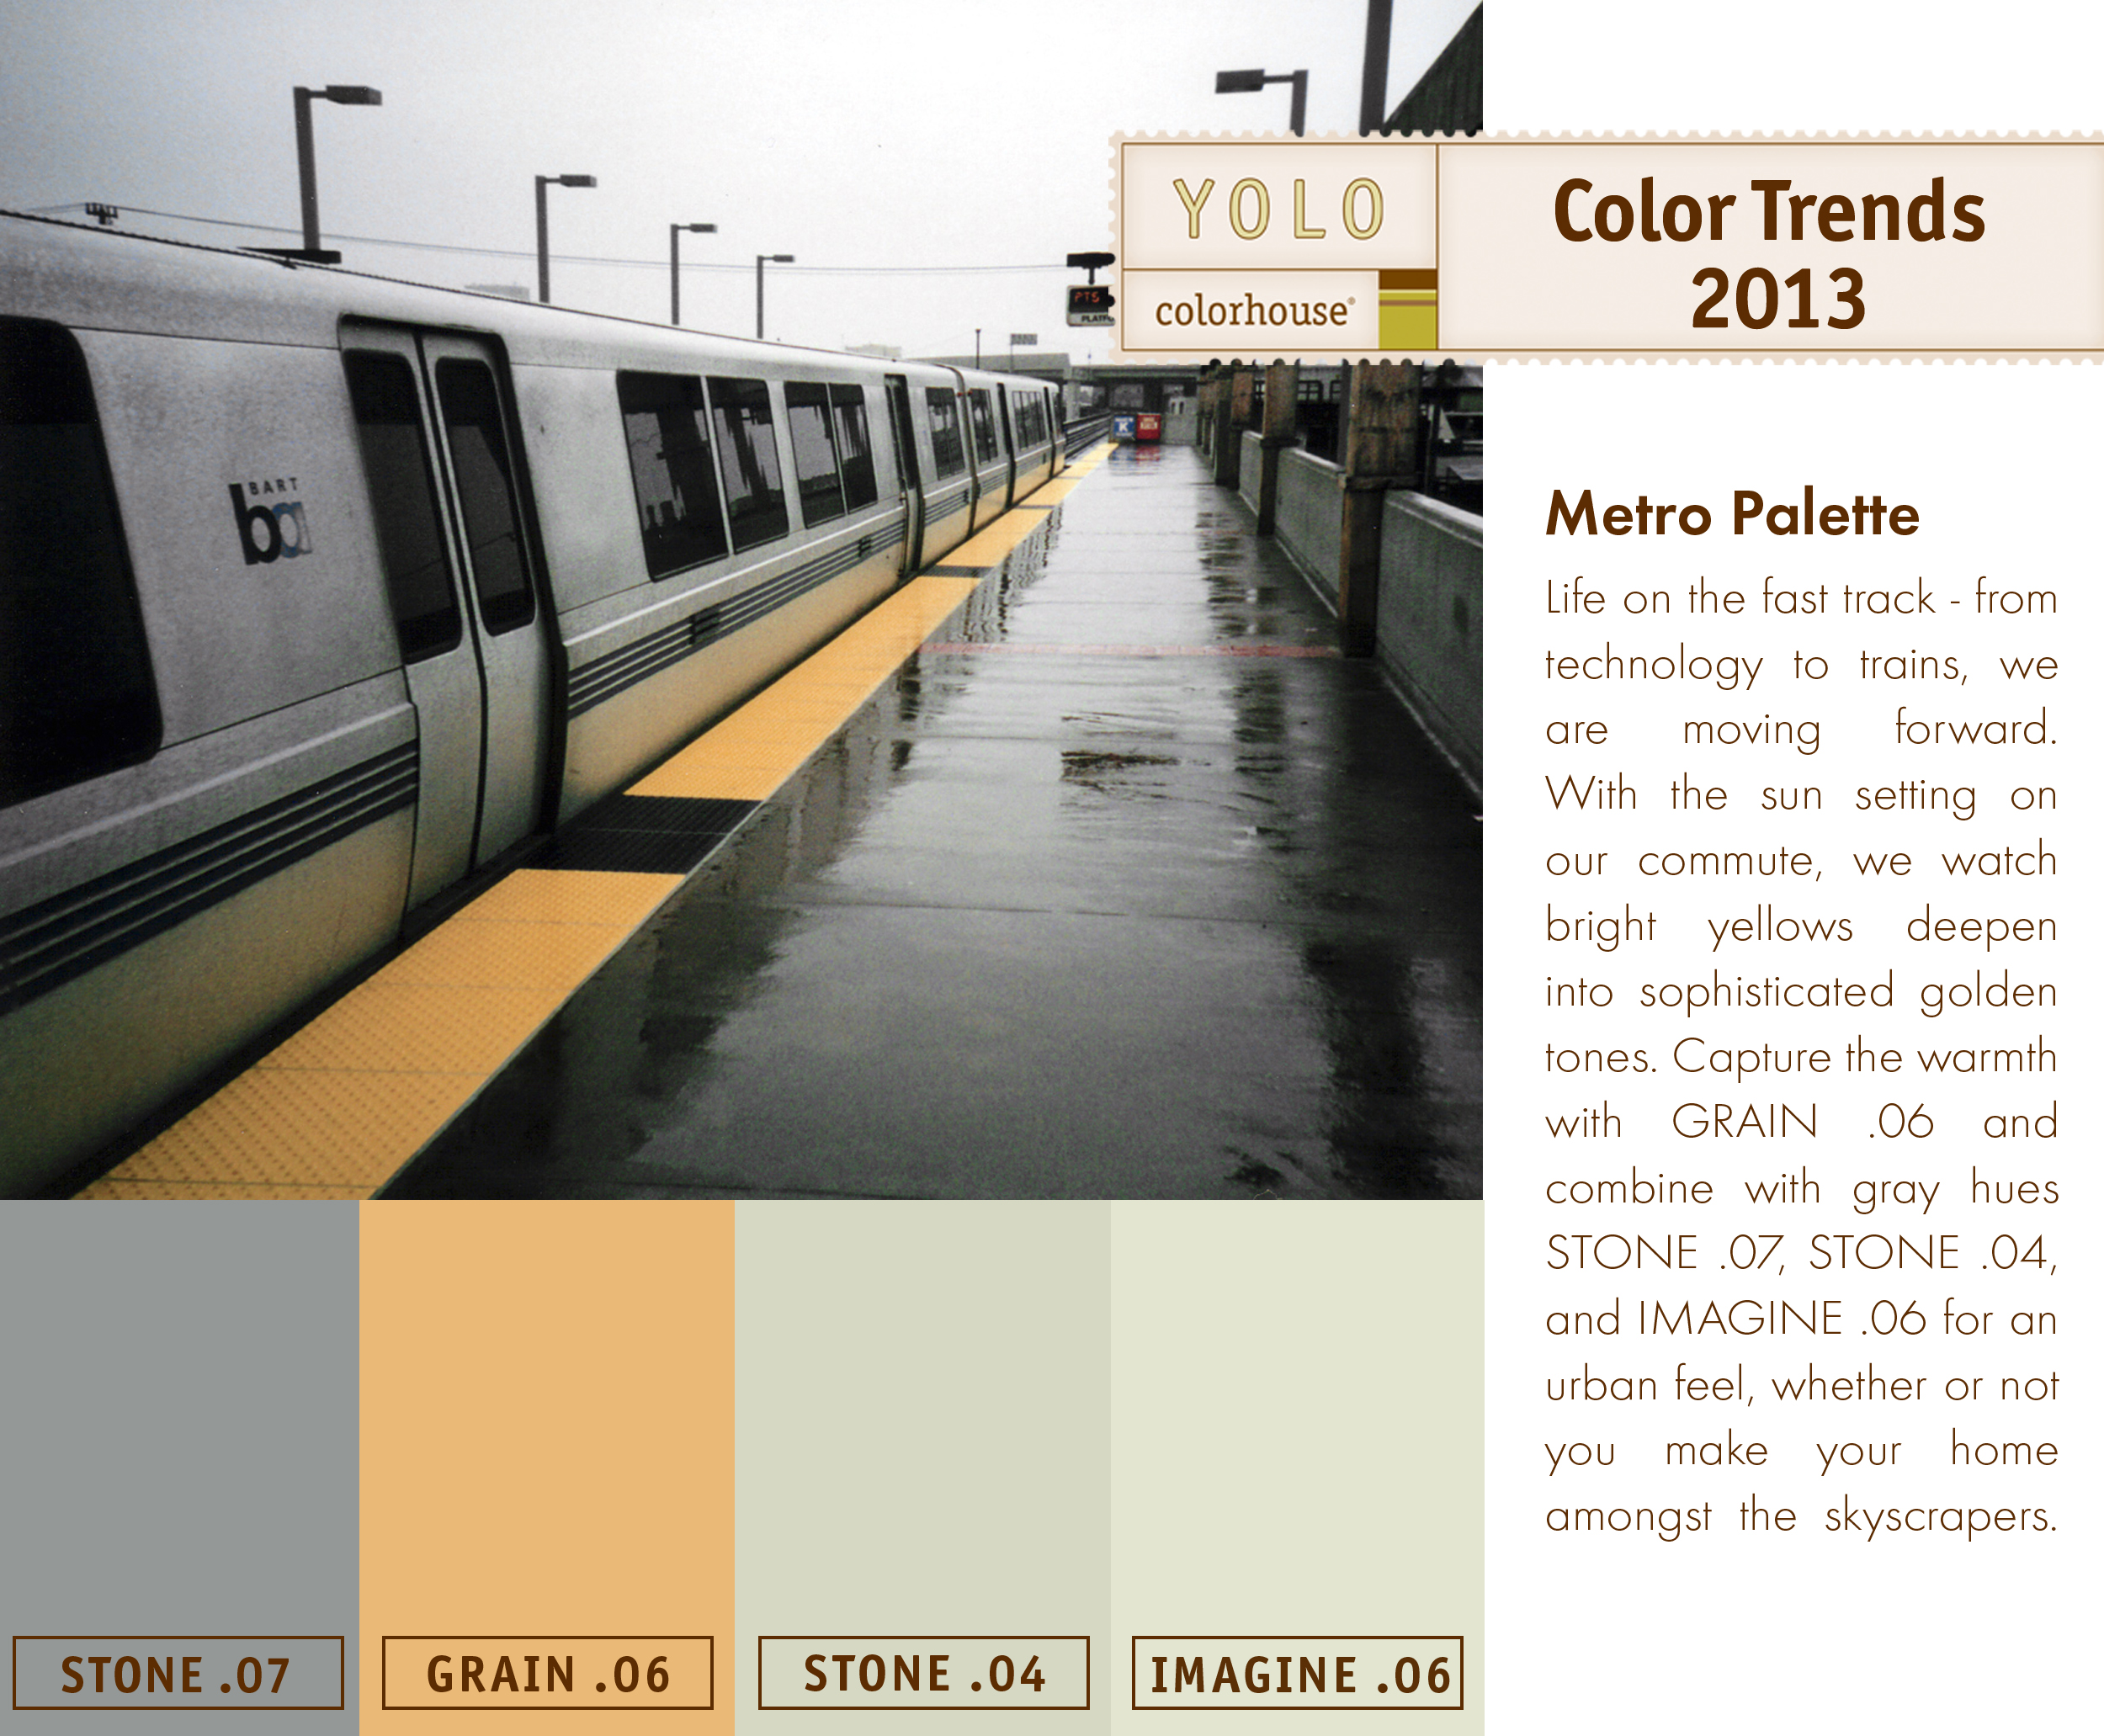 Yolo Colorhouse Metro Palettethis Color Palette Illustrates Life On The Fast Track Reminiscent Of A Big